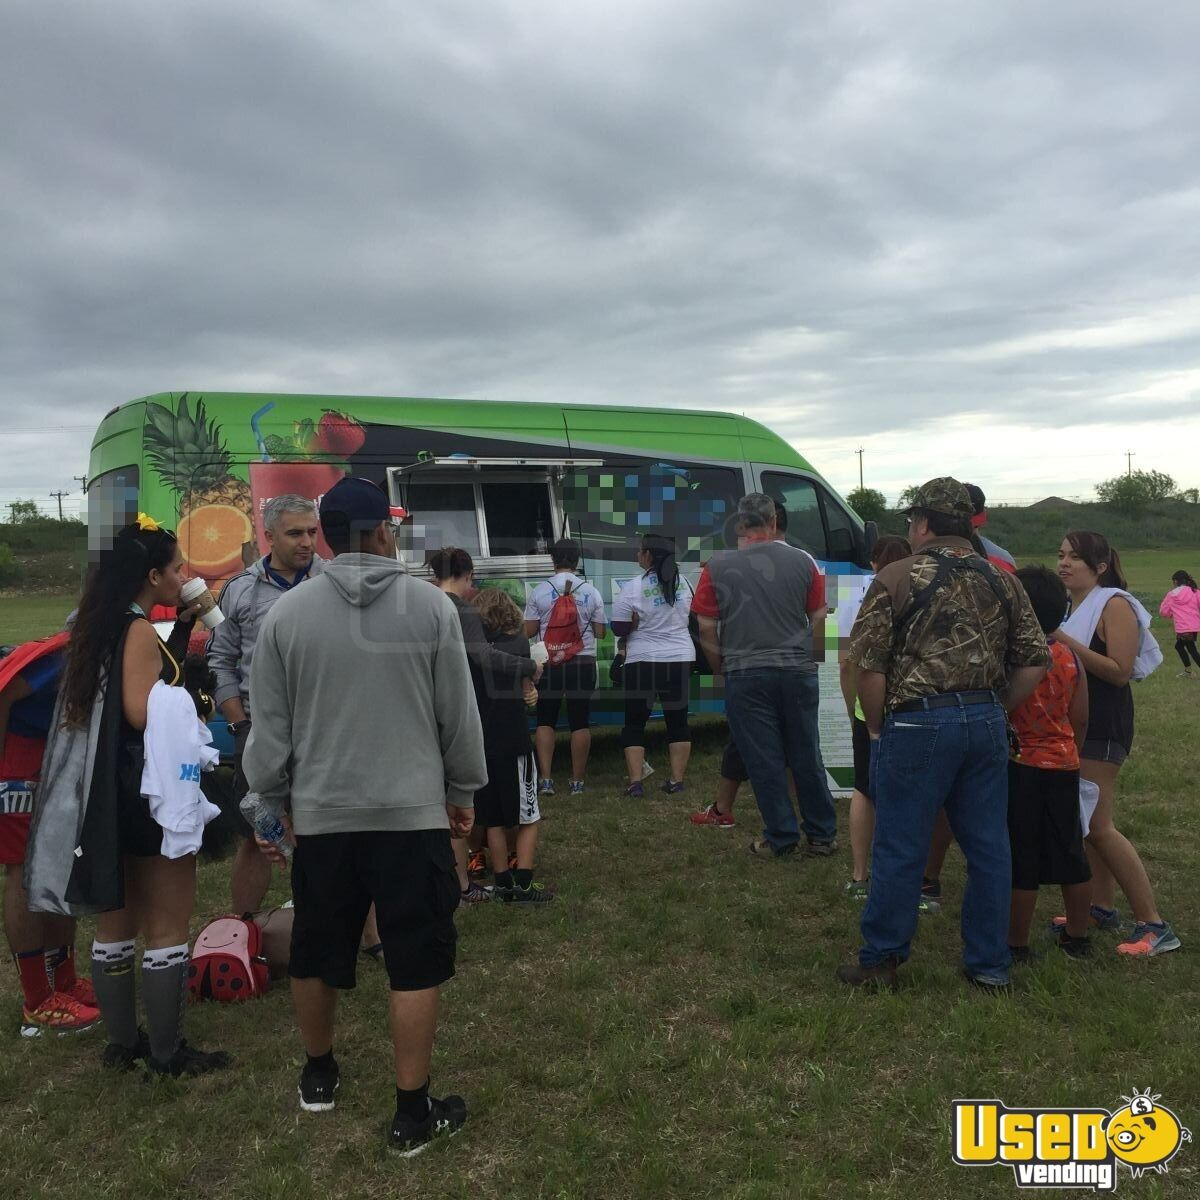 2014 Mercedes Smoothie / Beverage Truck for Sale in Texas - 4